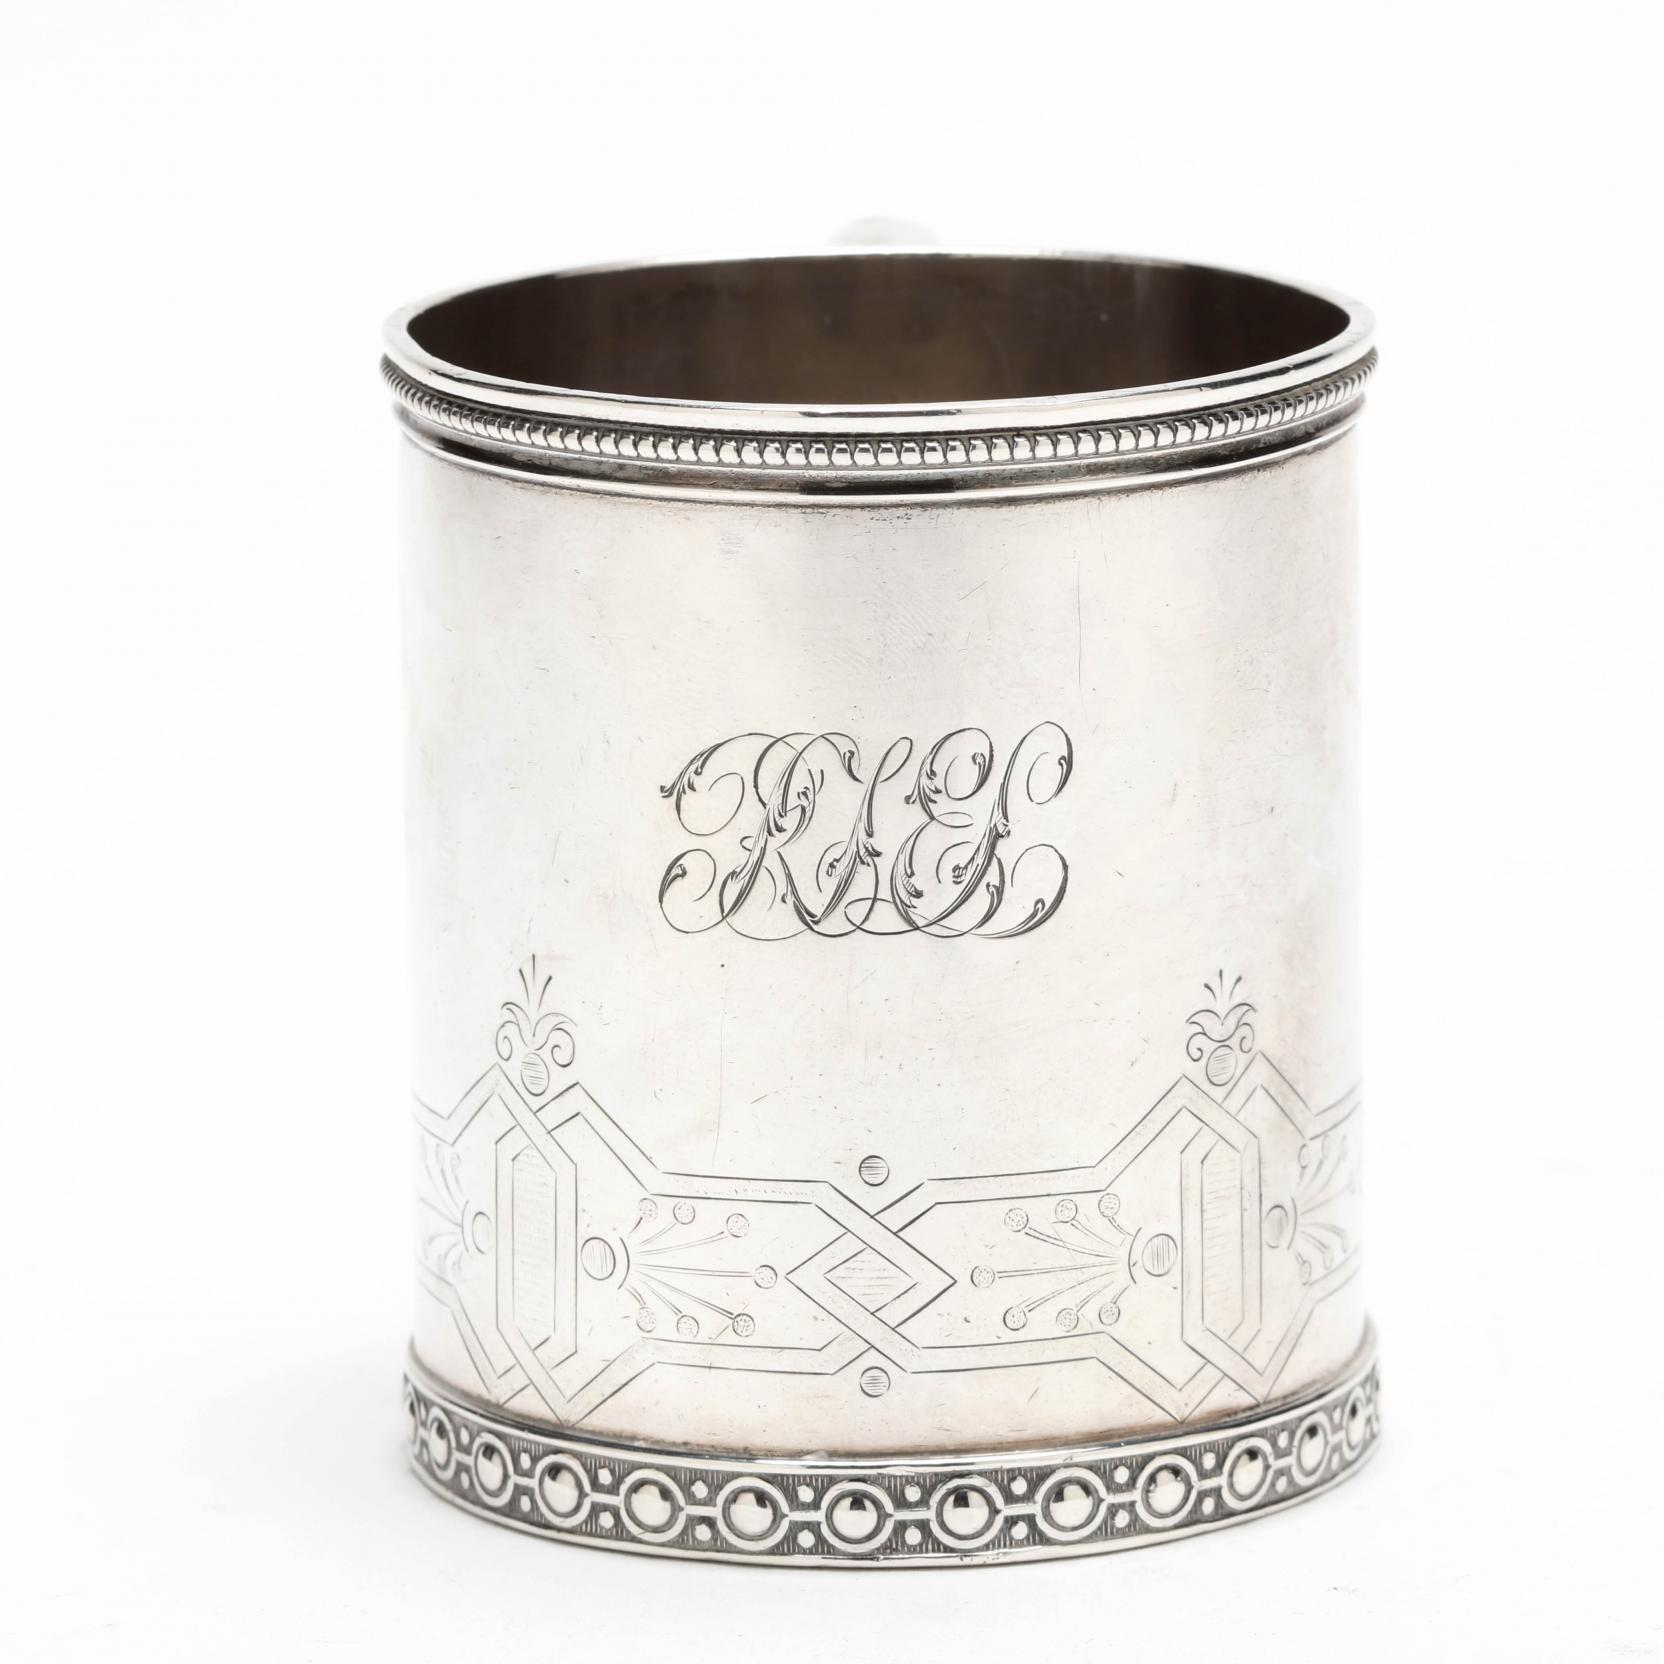 a-sterling-silver-cup-by-newburg-bogert-for-tiffany-co